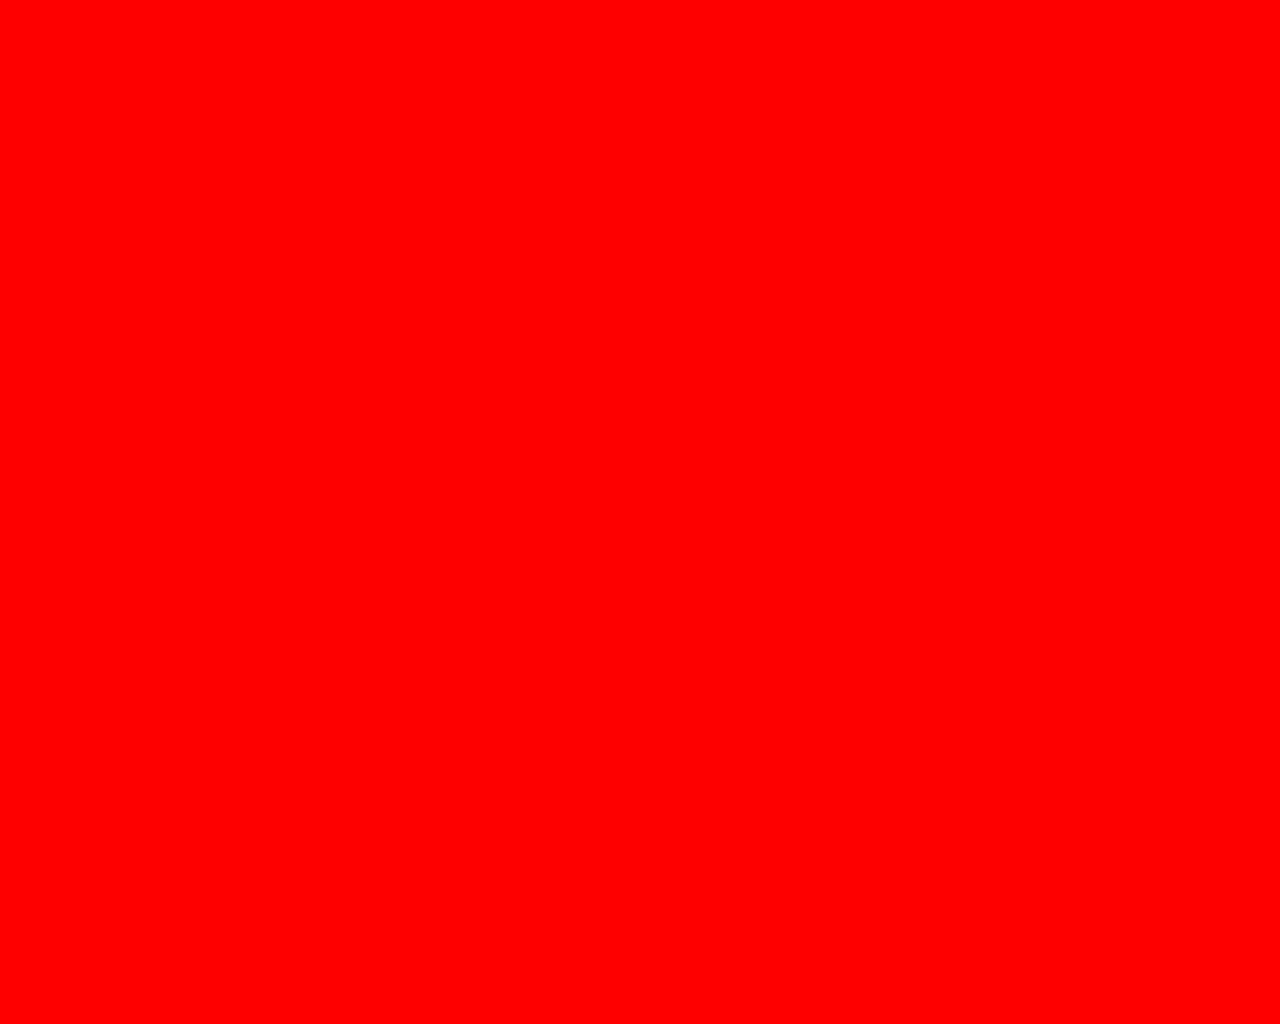 1280x1024 Red Solid Color Background